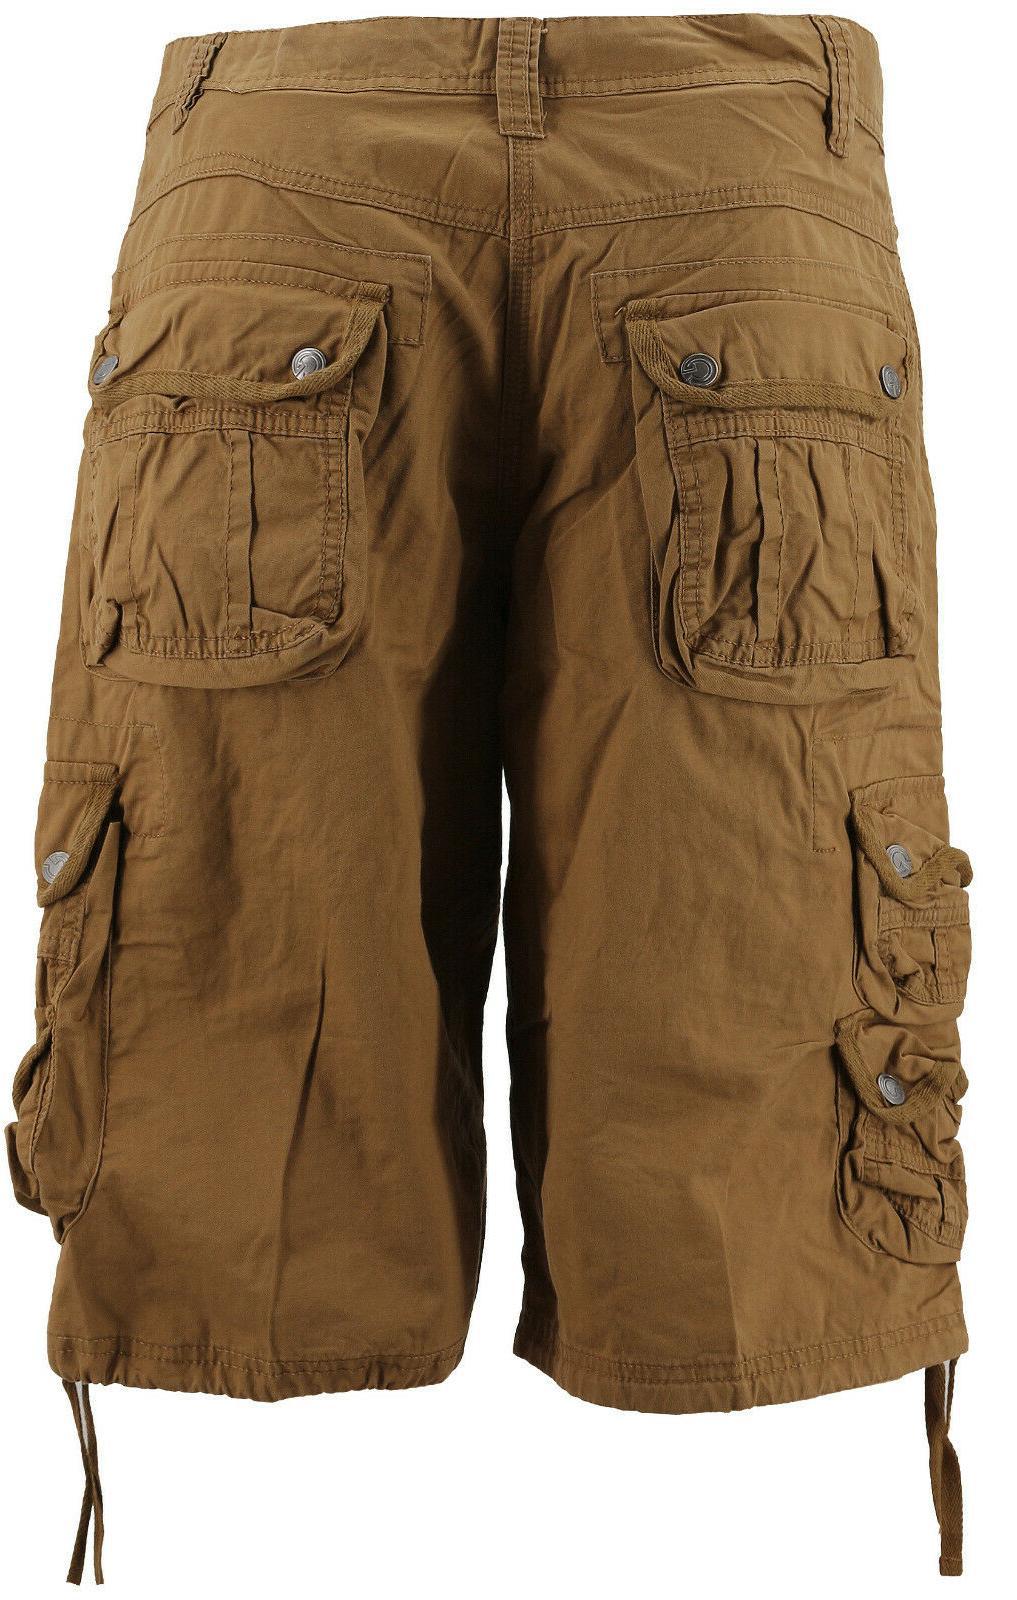 MSLM Men's Army Relaxed Pocket Khaki